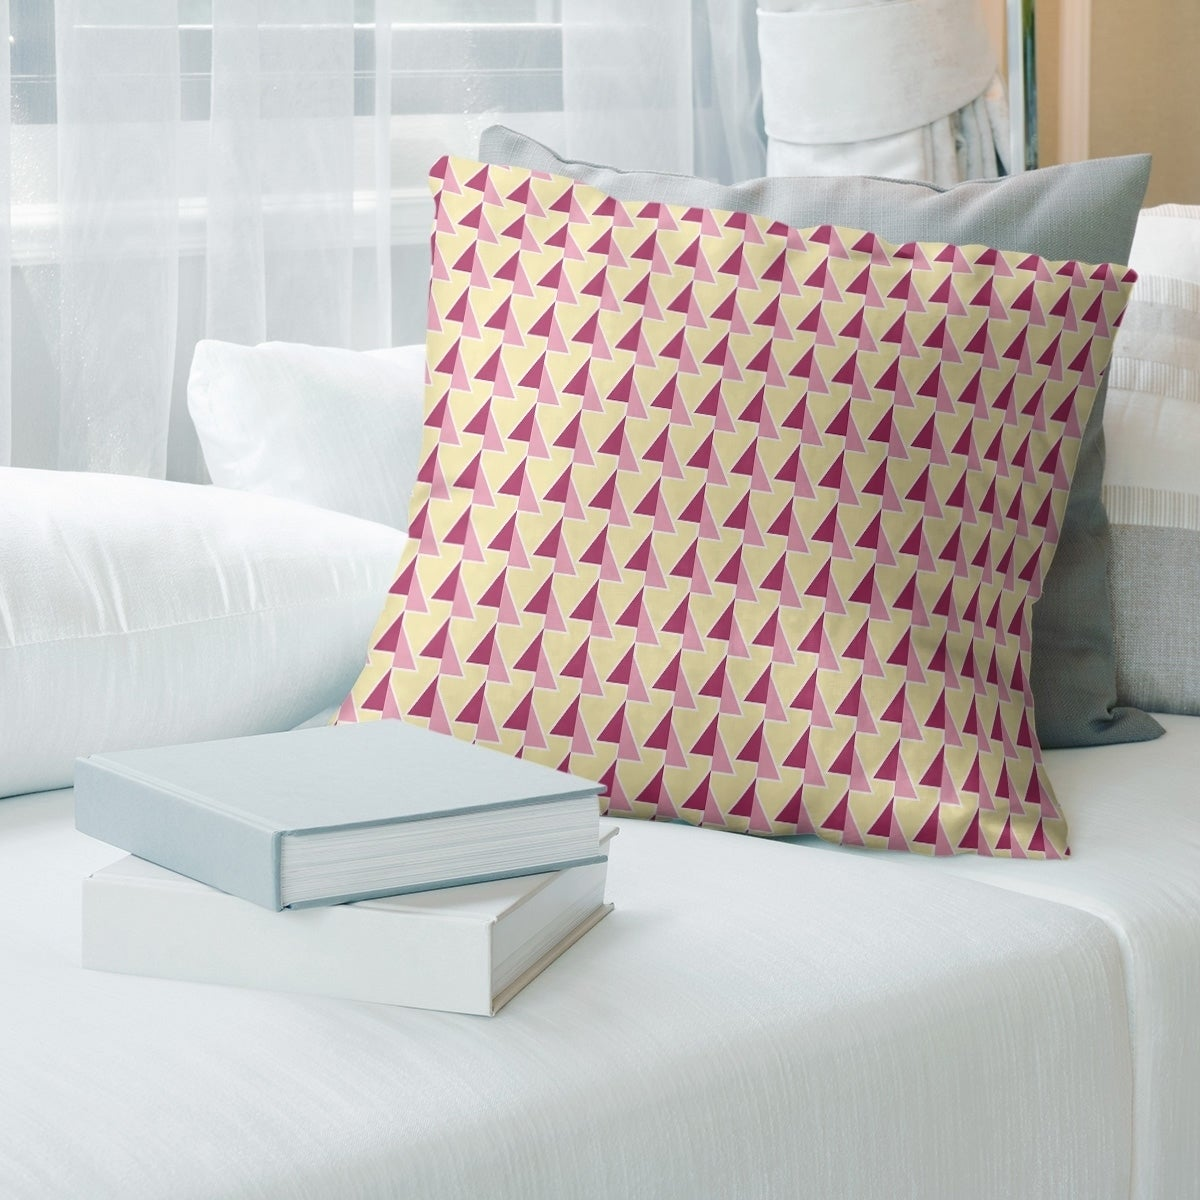 Two Color Shifted Arrows Pattern Throw Pillow Overstock 28355596